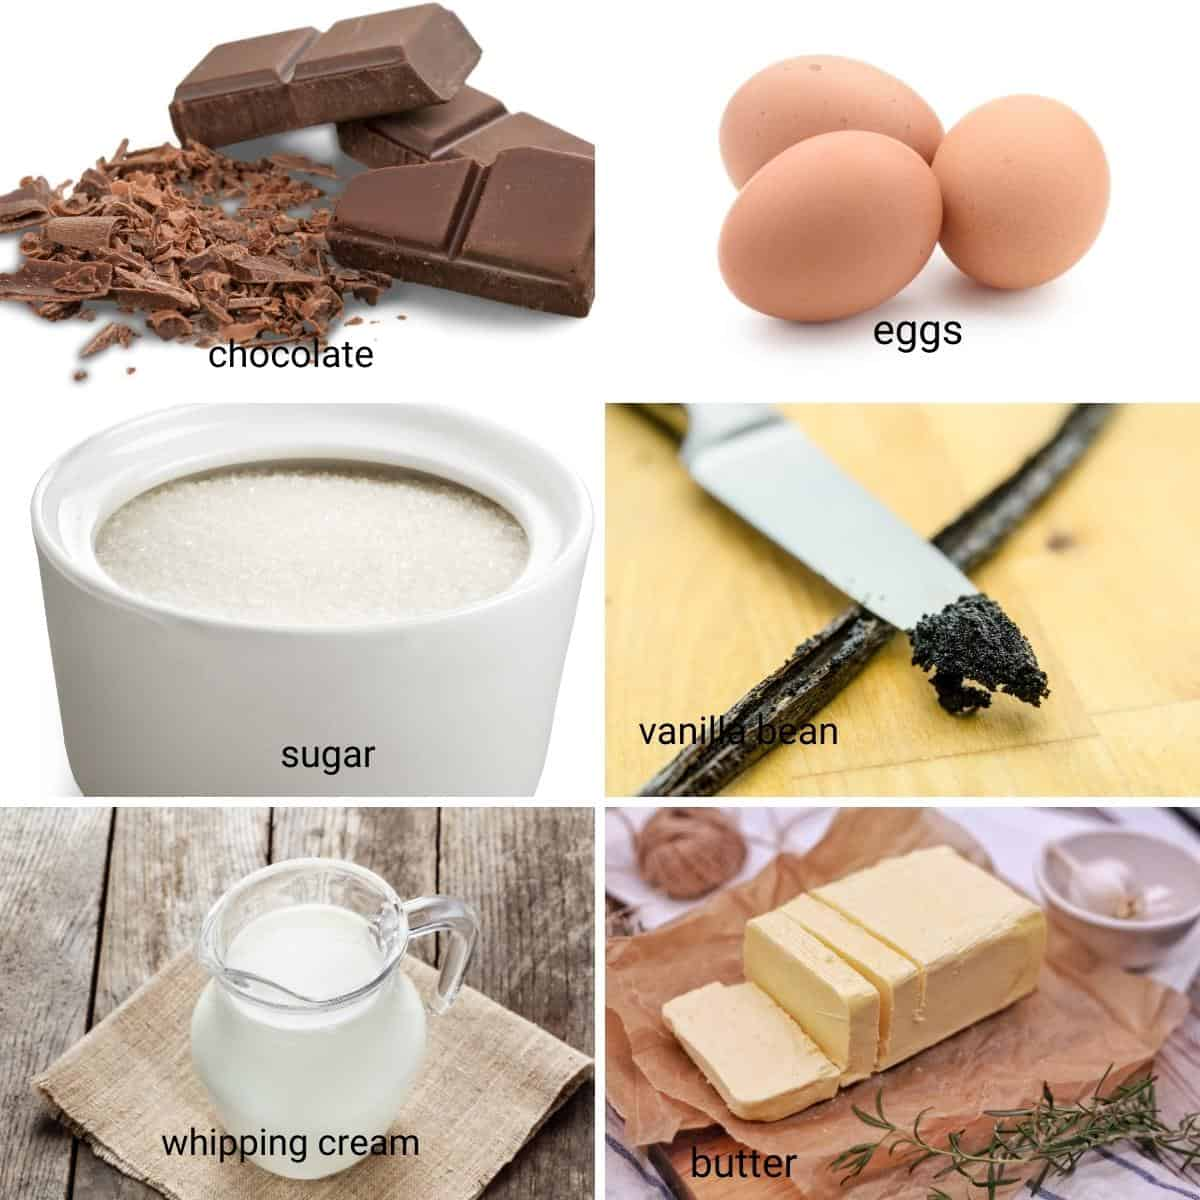 Ingredients shot collage for chocolate mousse.